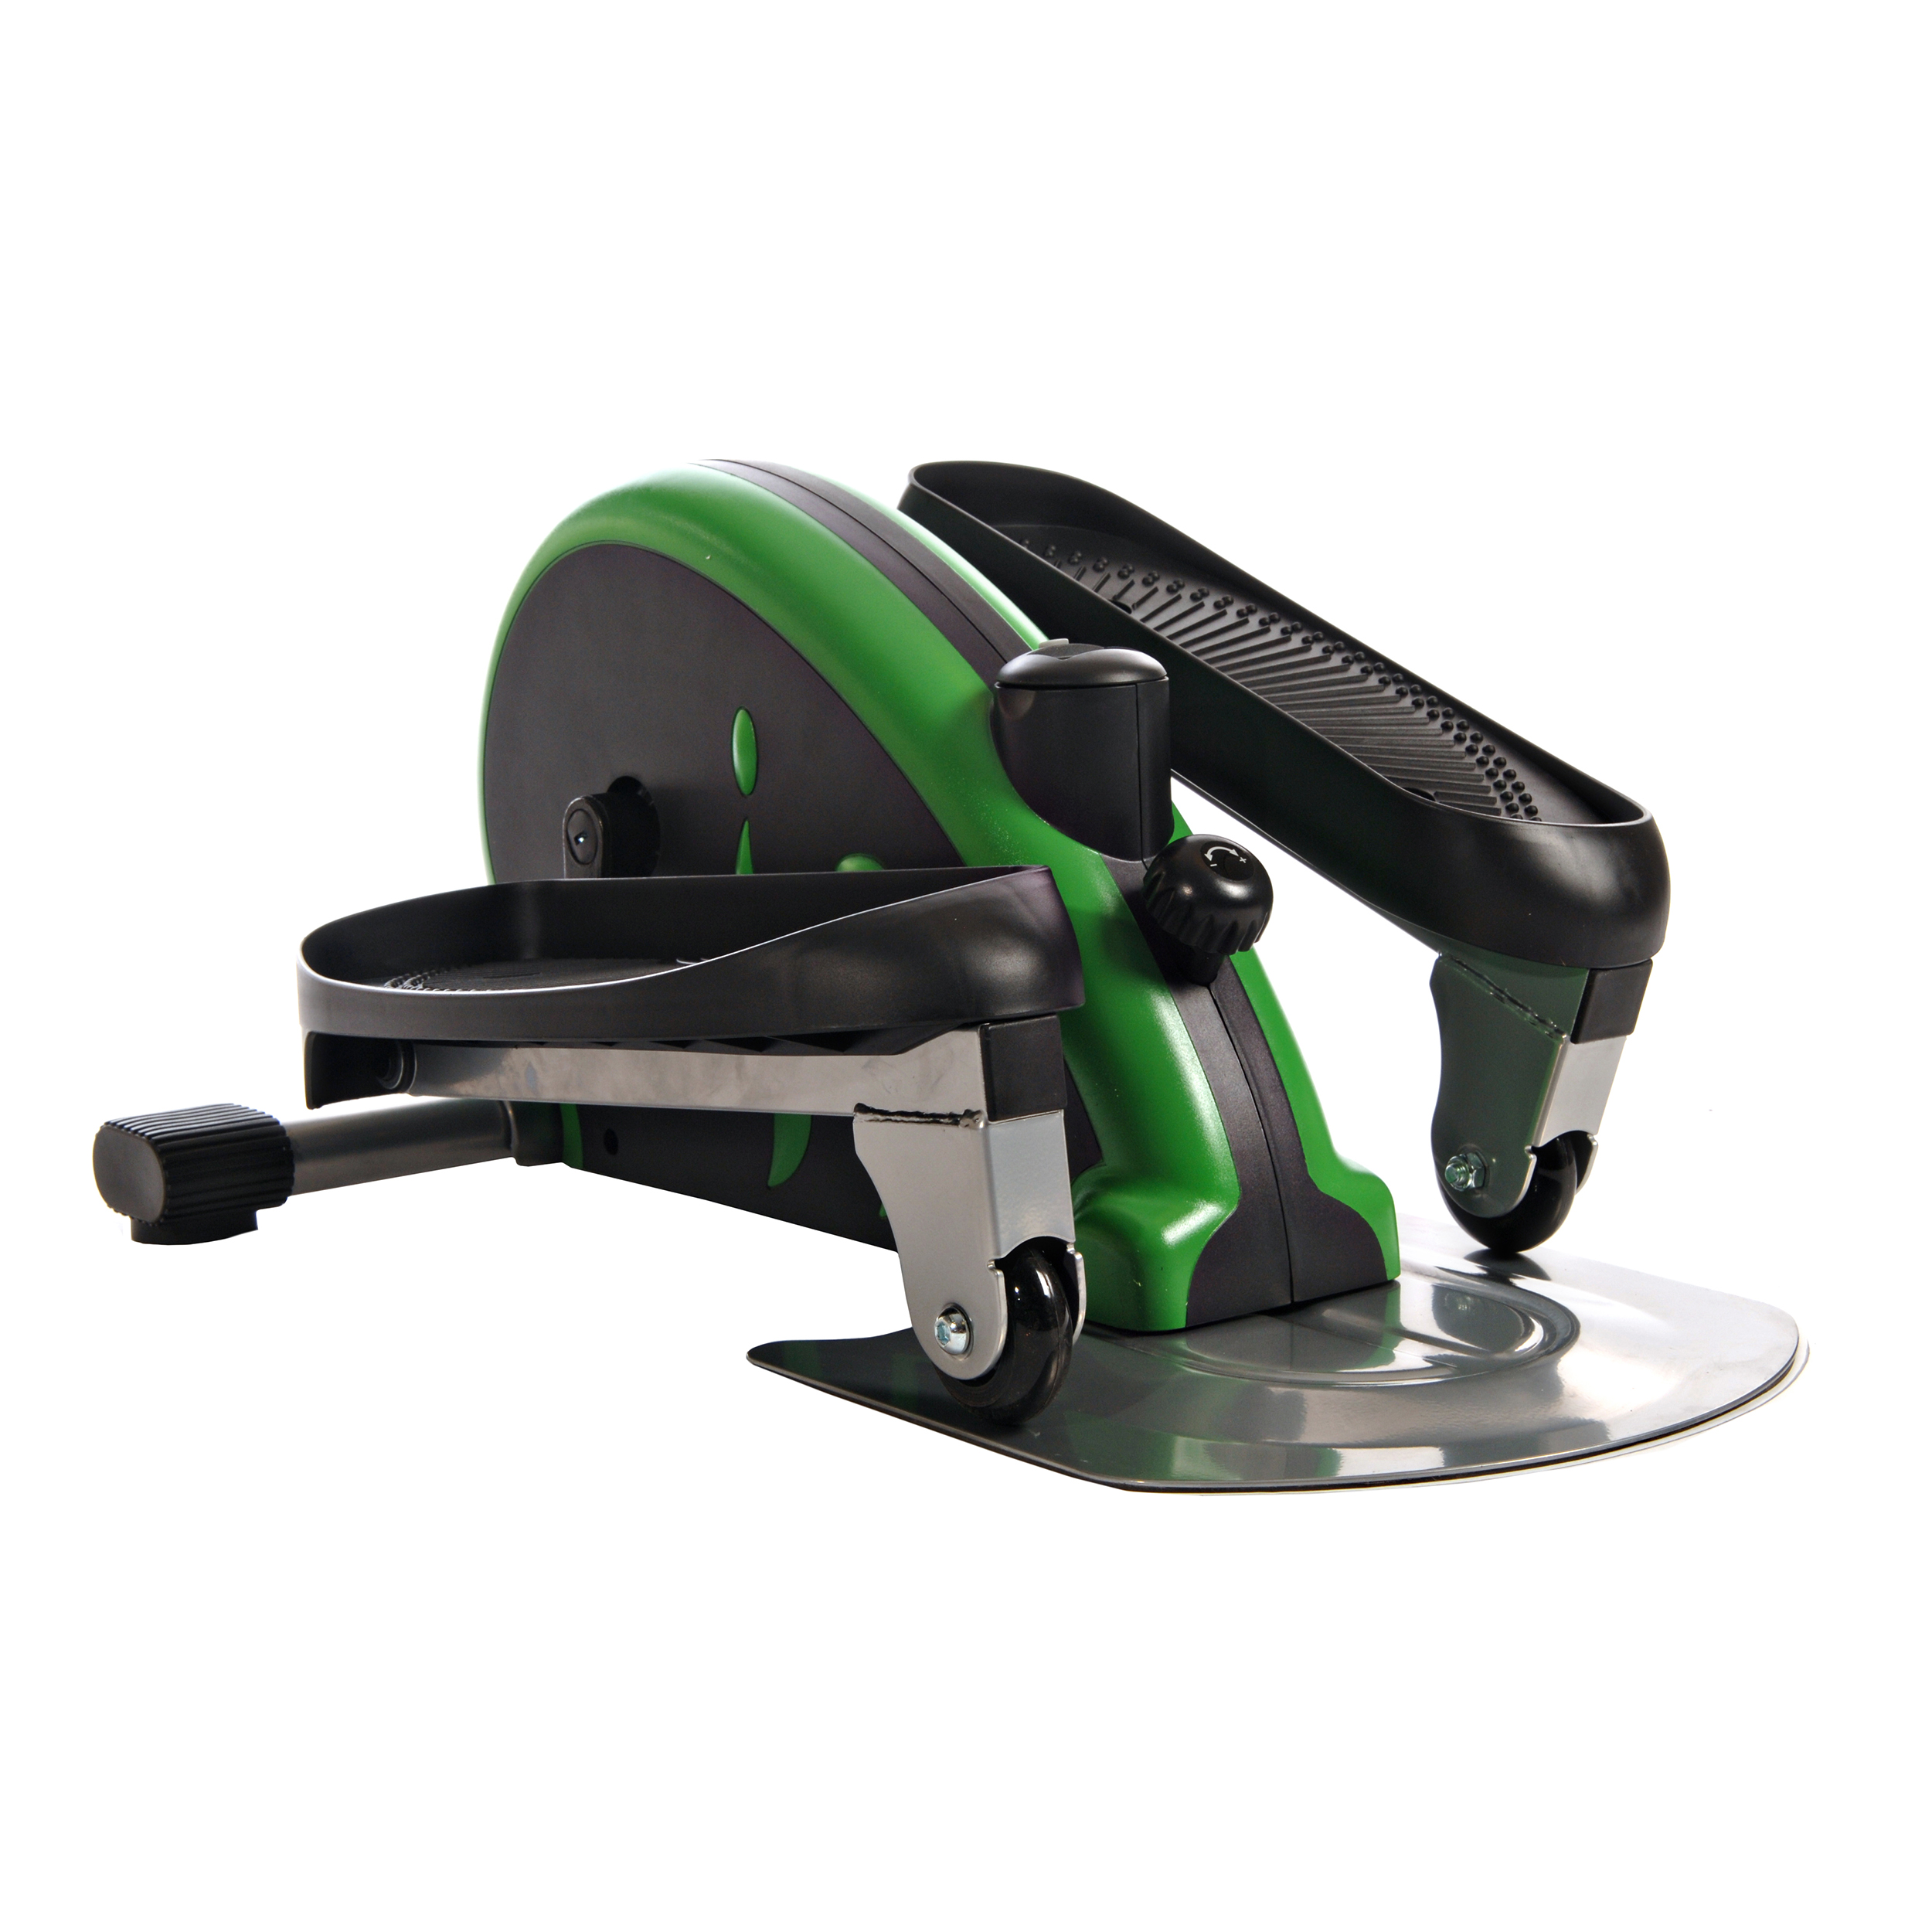 Stamina InMotion Compact Strider Green home gym exercise equipment